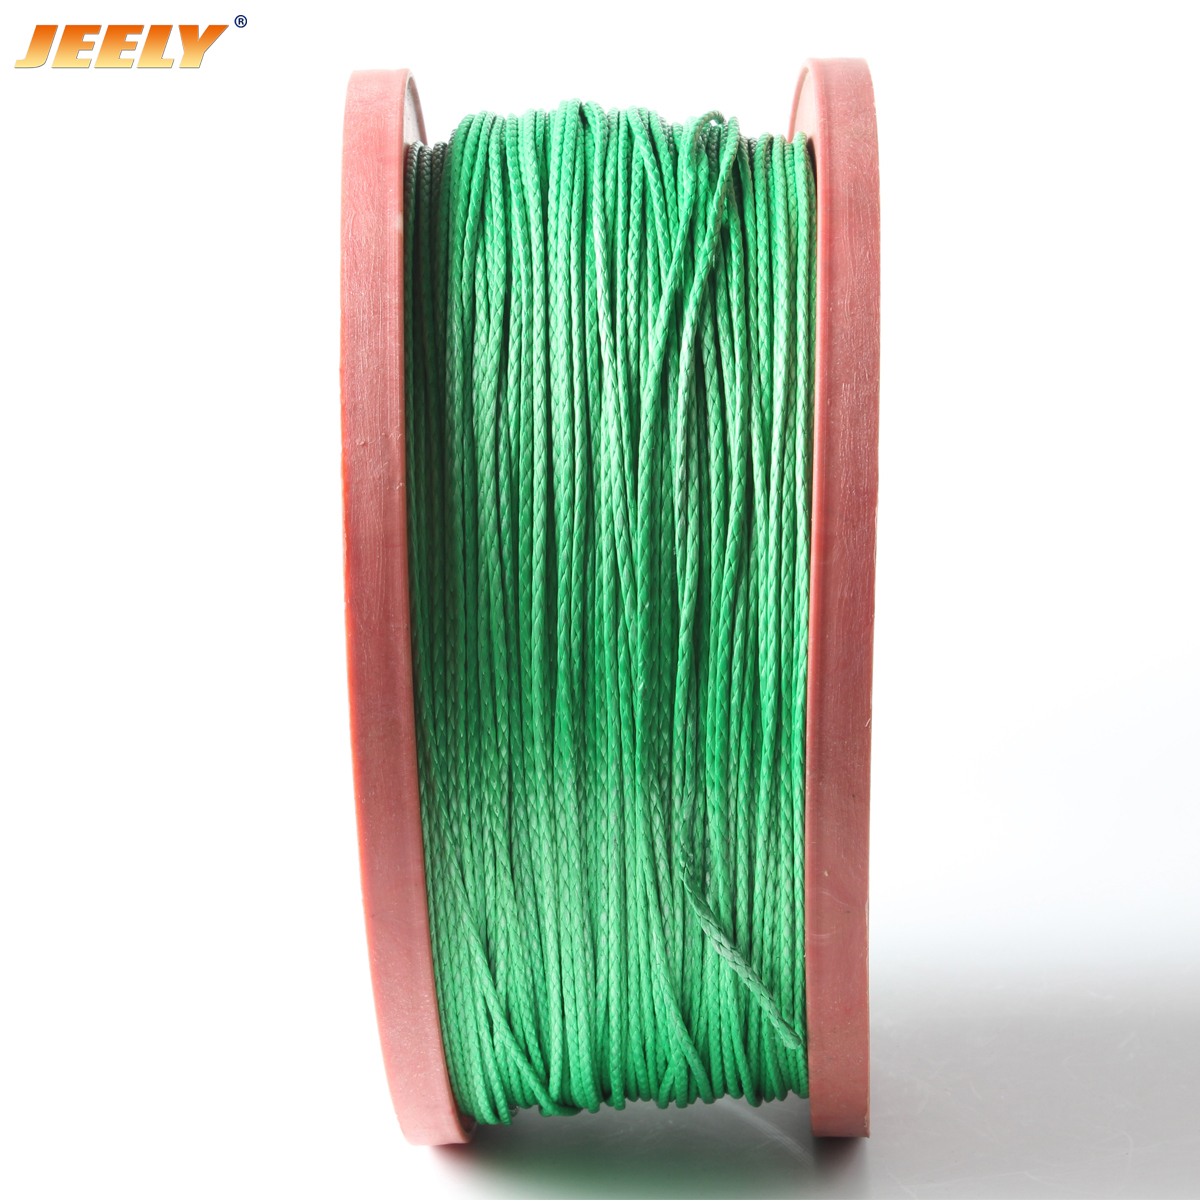 1.2mm 8 strand uhmwpe fiber braided kite line